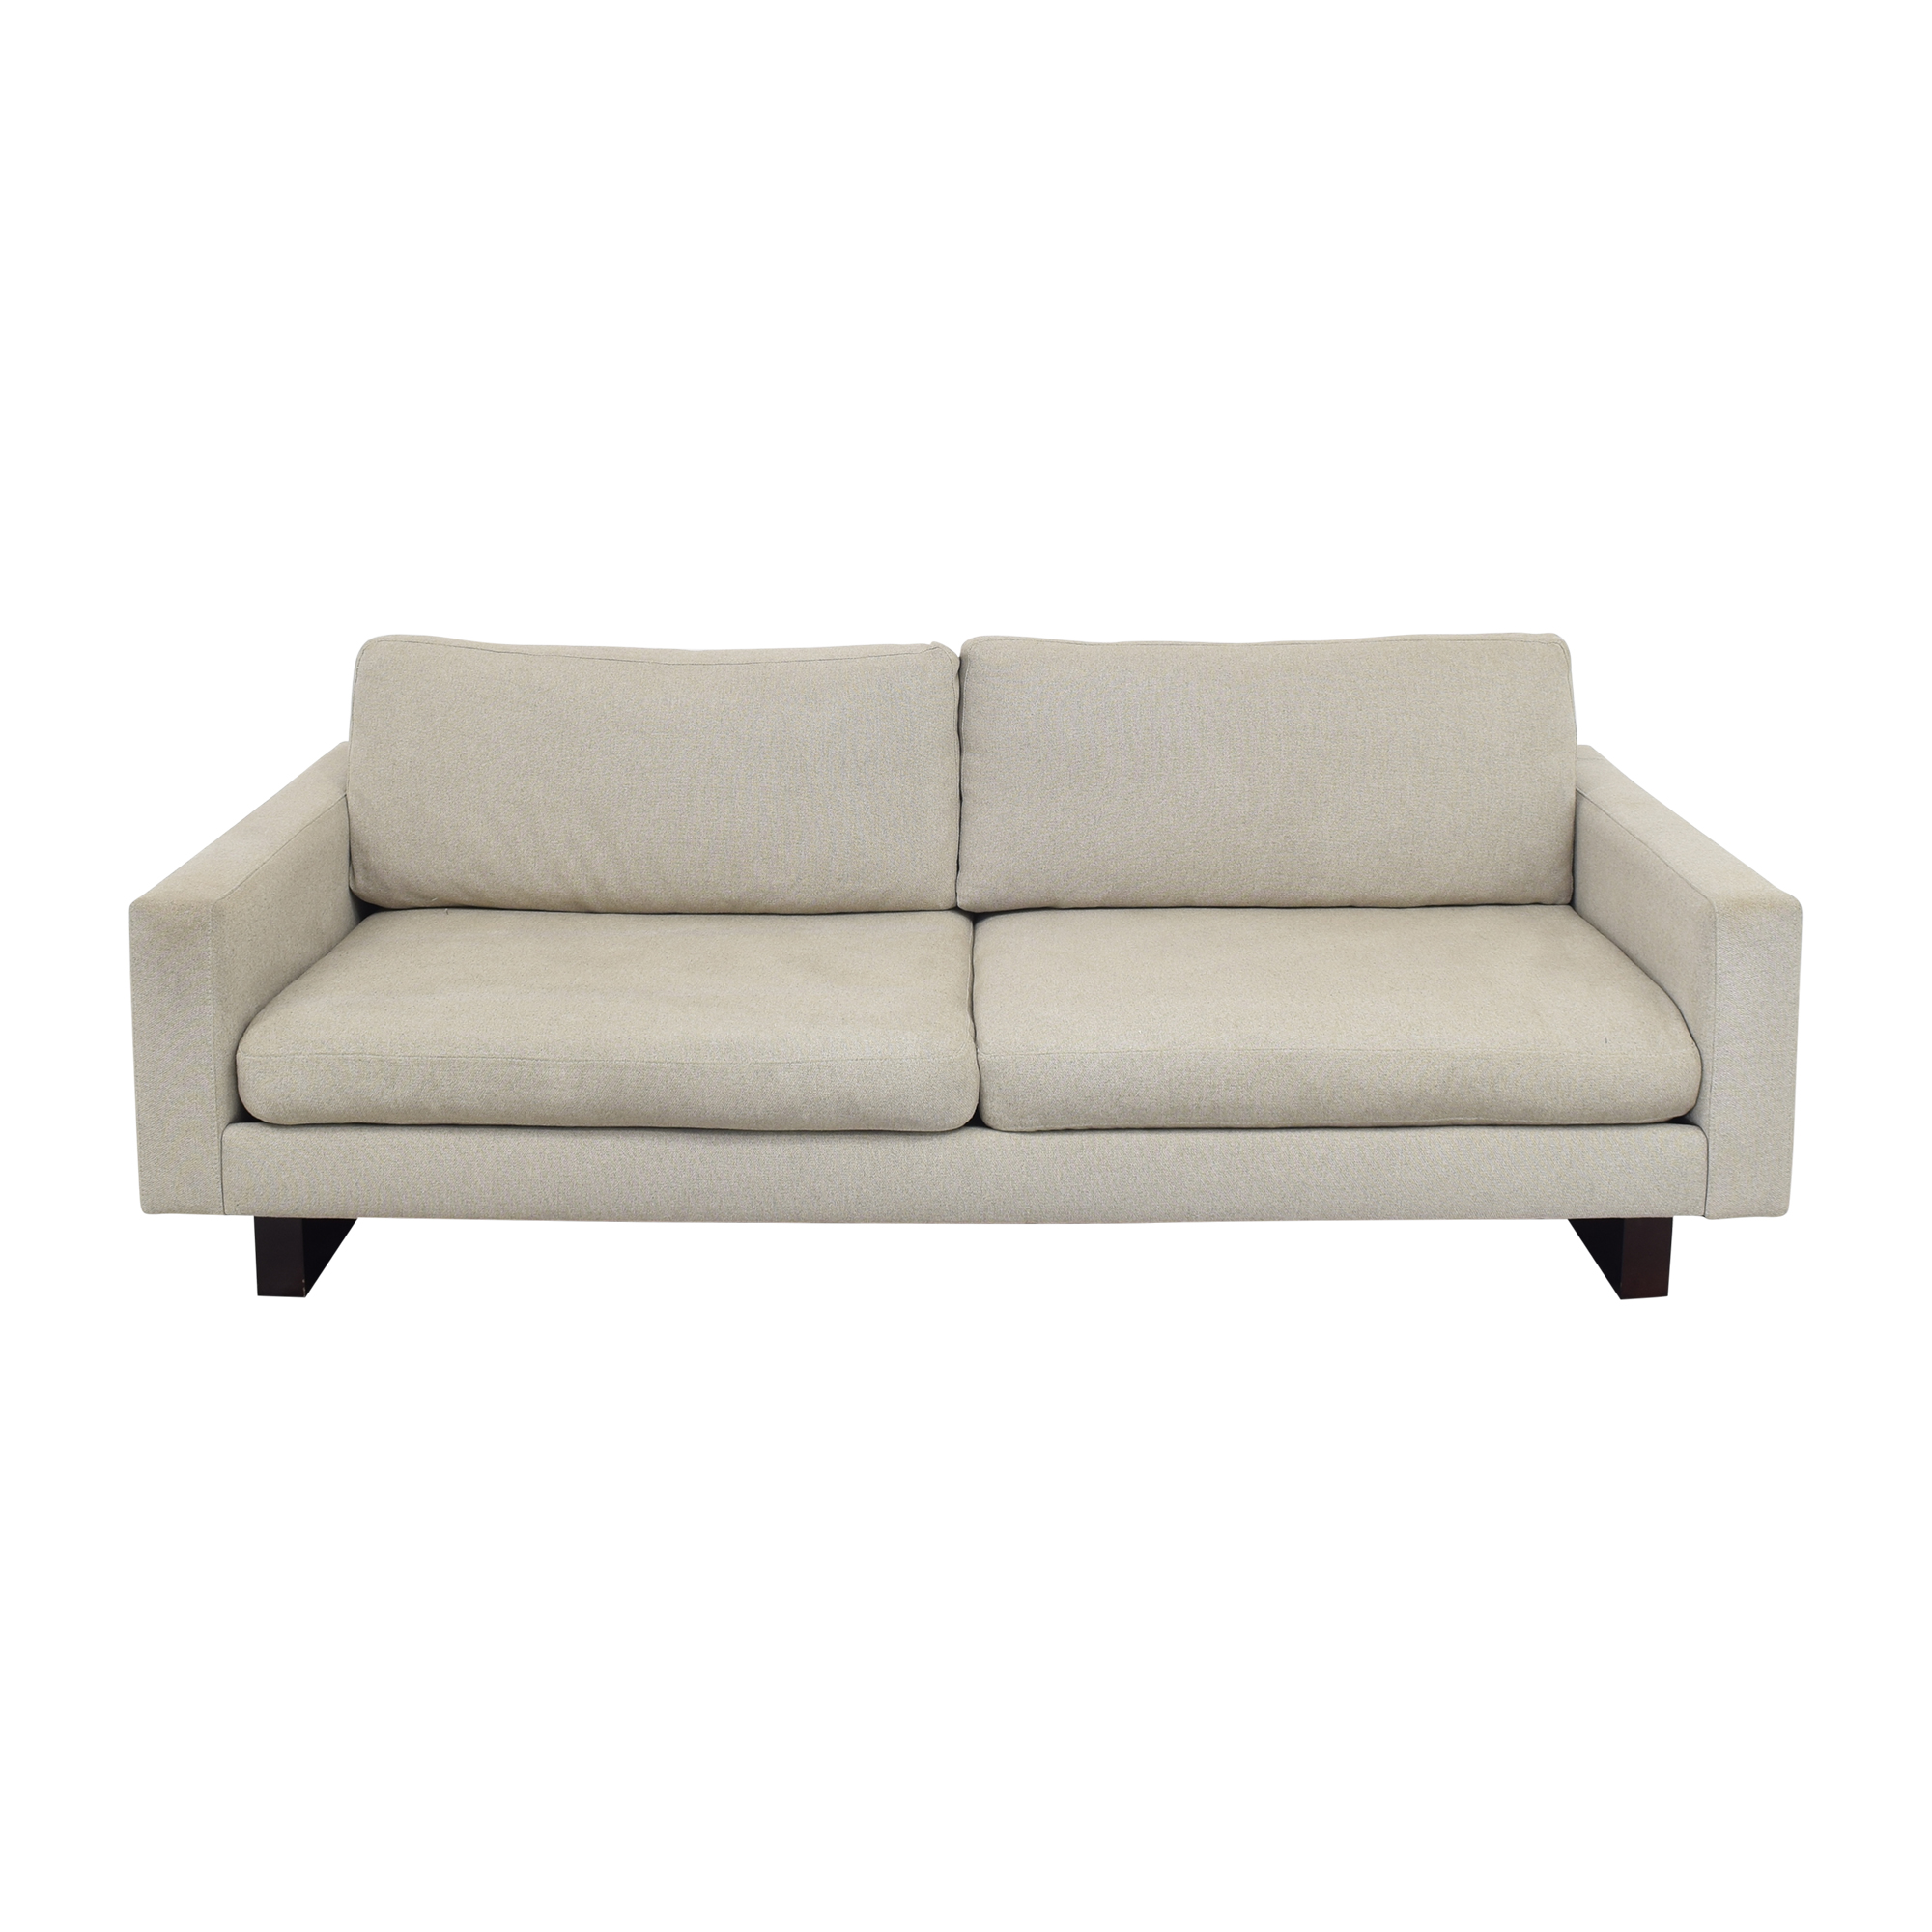 Room & Board Room & Board Hess Sofa on sale